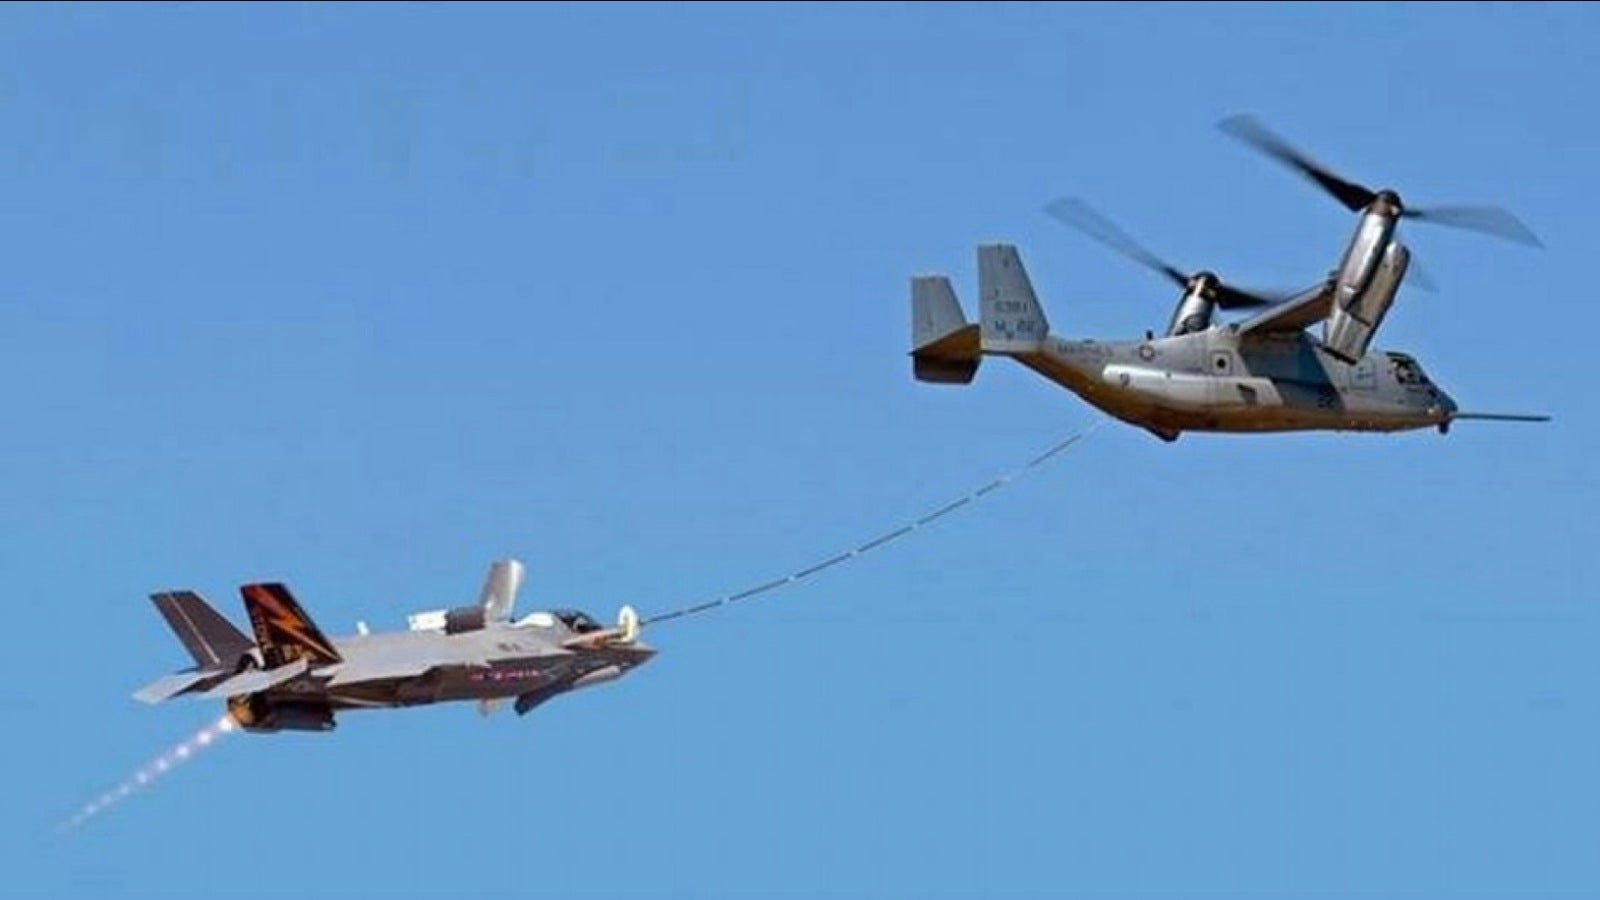 In-Air Fueling Turns The V-22 Osprey Into One Badass Mama Bird